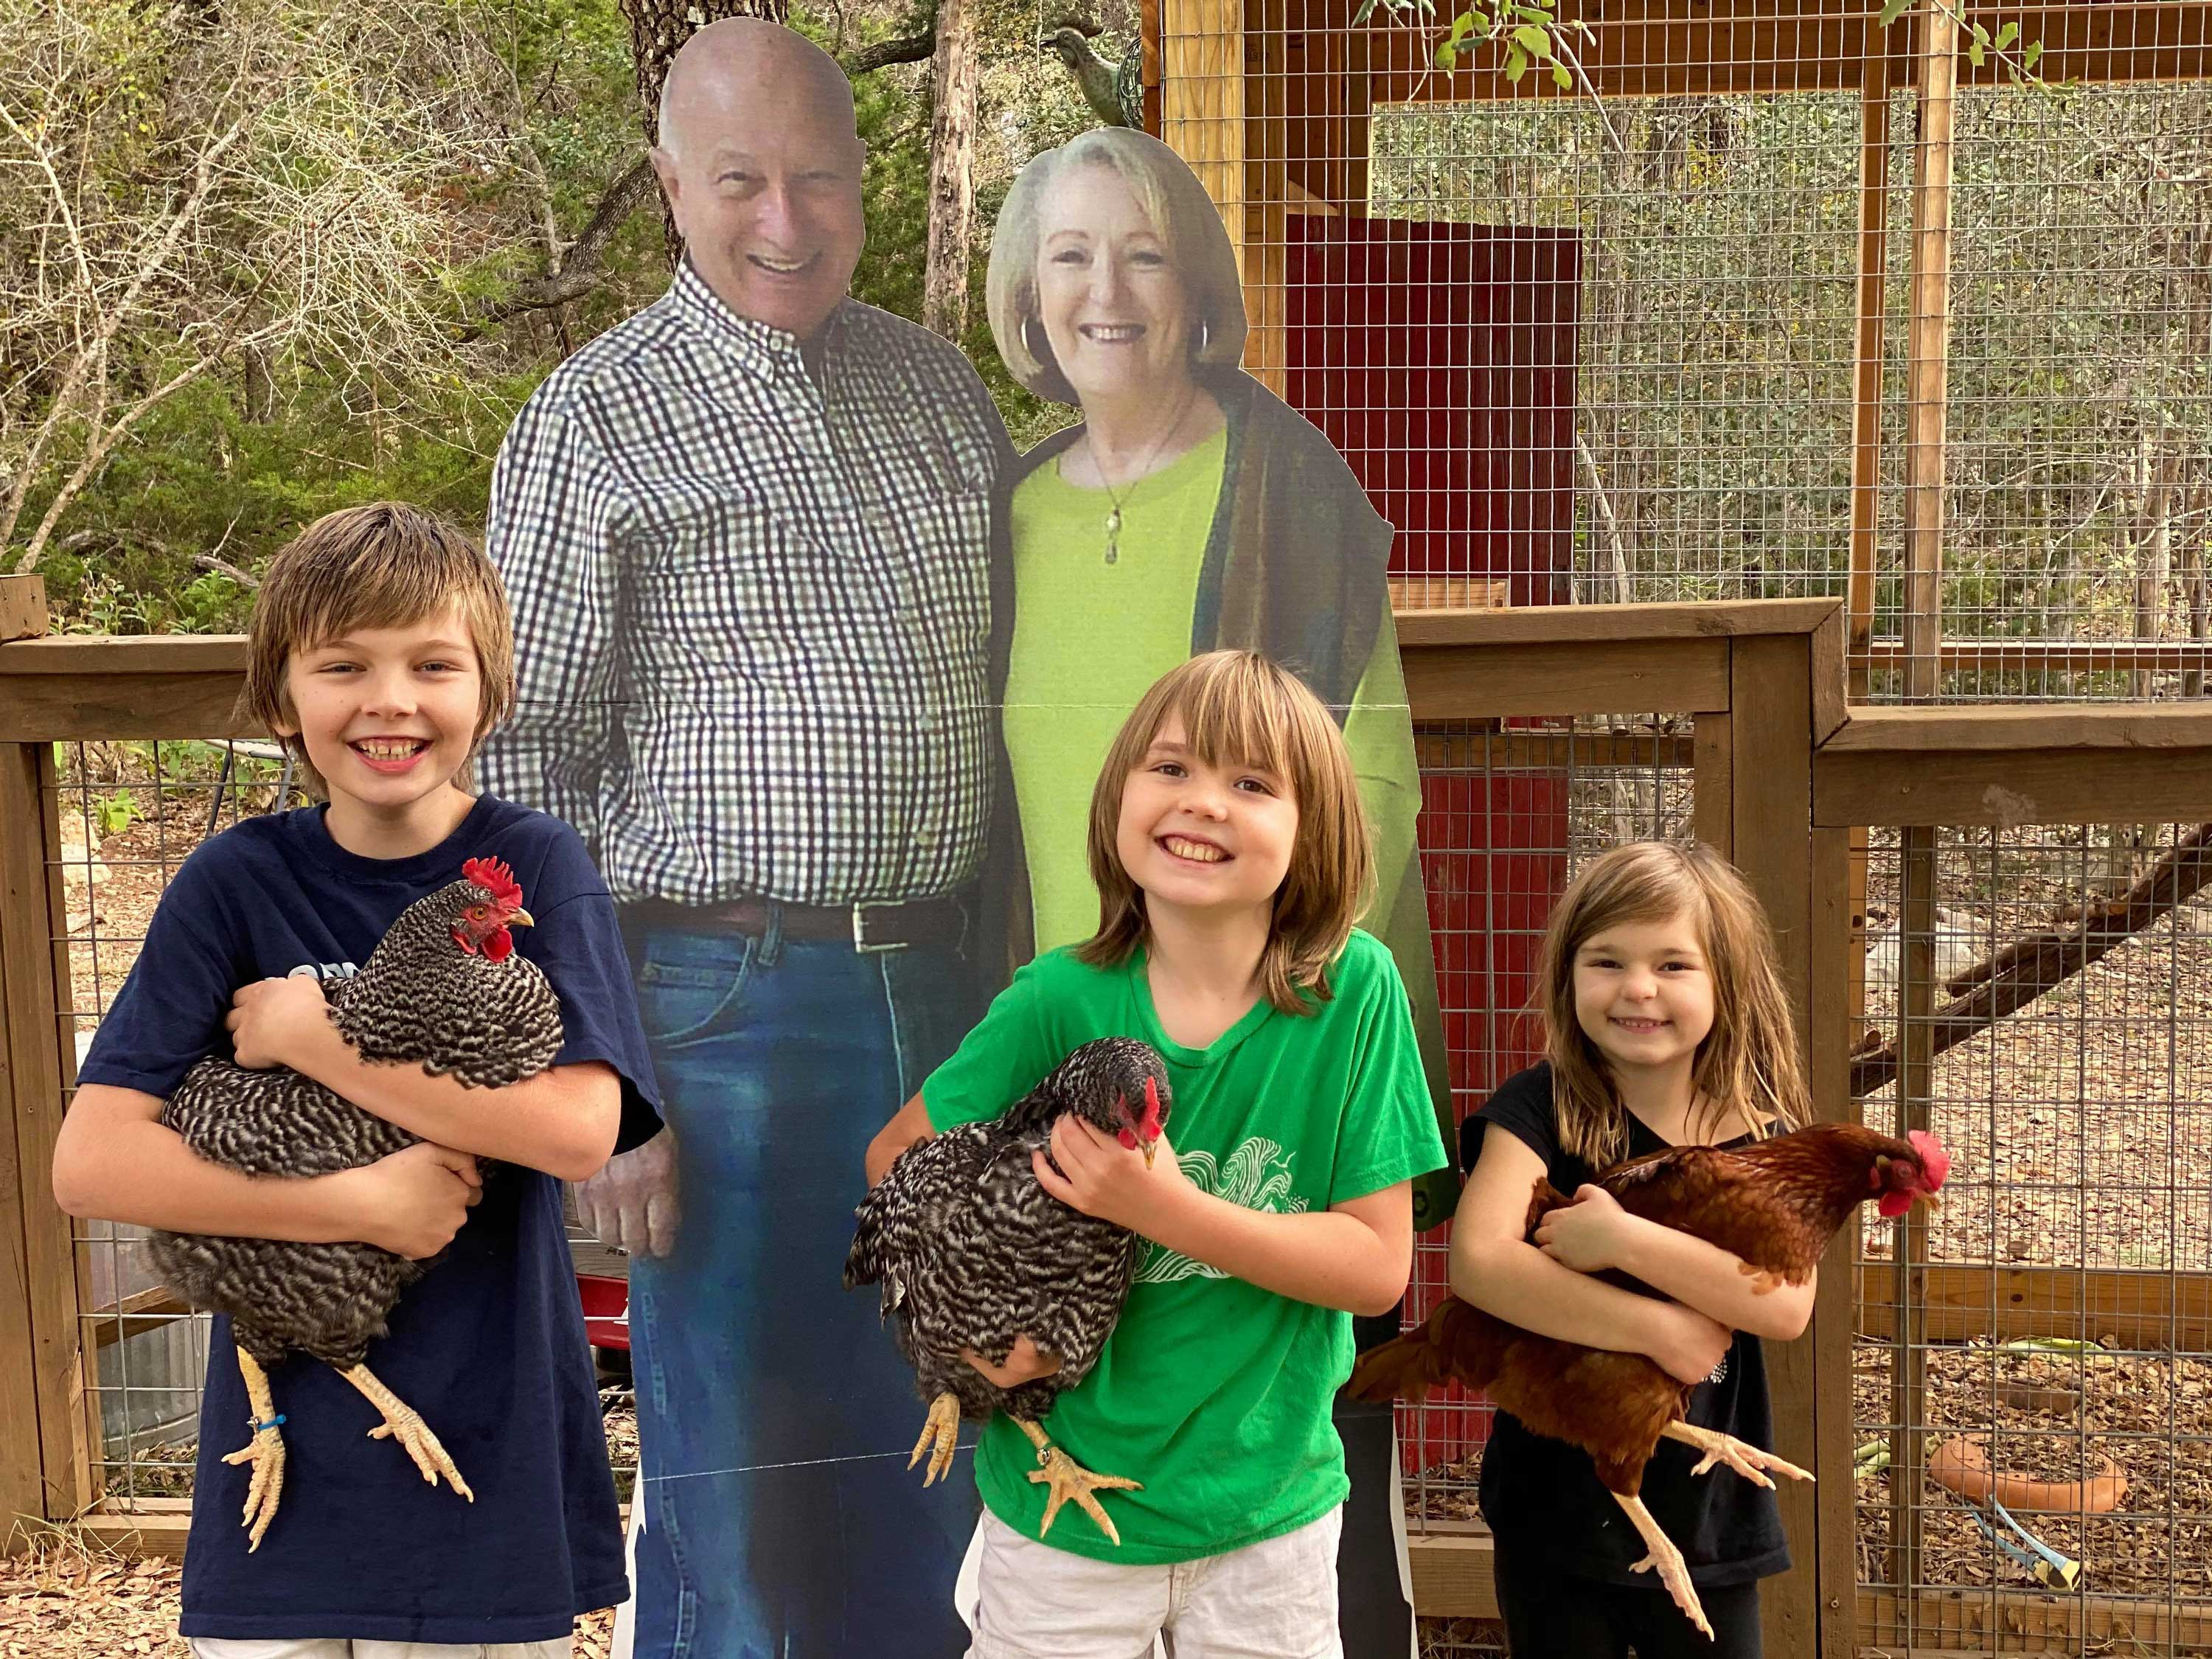 Couple sends life-sized cardboard cutouts to their grandkids after coronavirus canceled their holiday plans